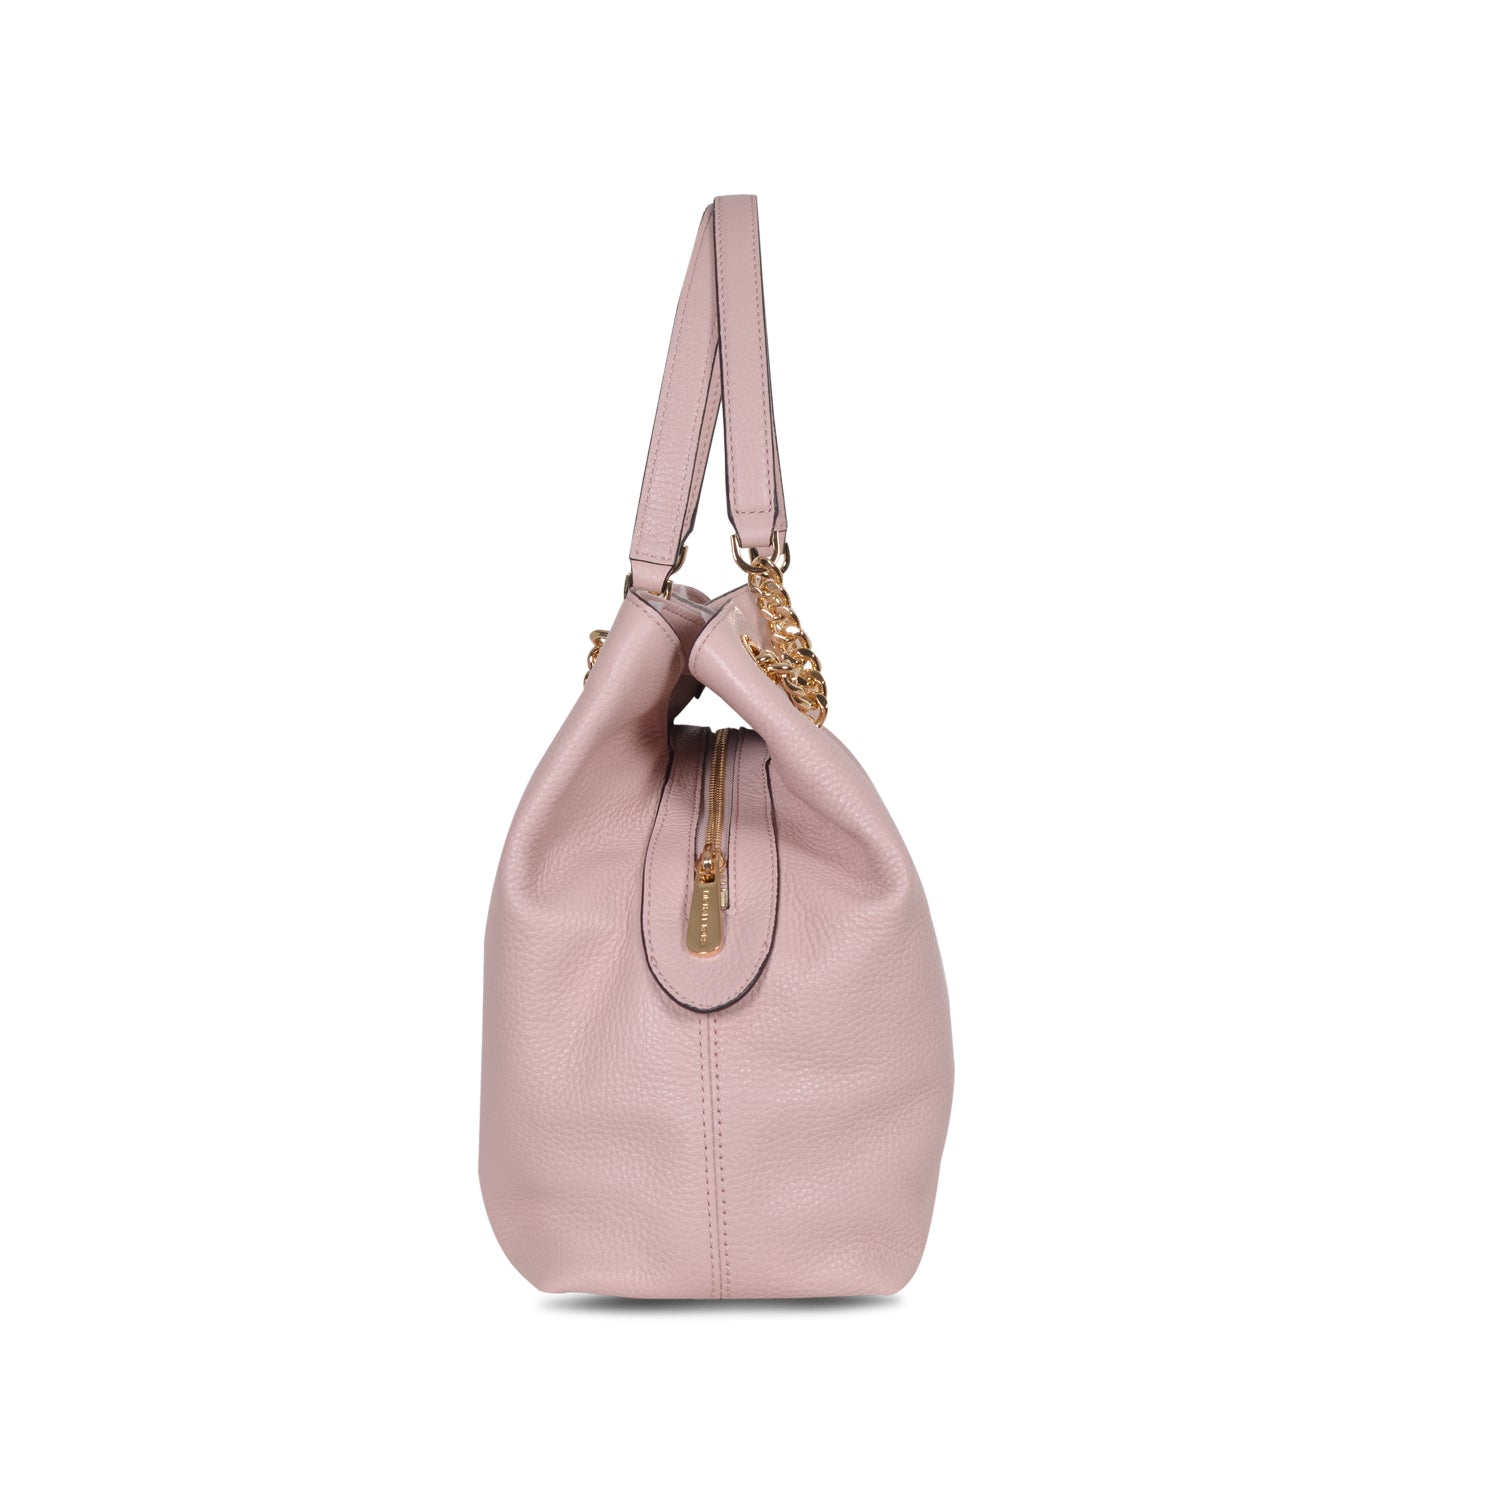 MICHAEL KORS JET SET LARGE PINK BLOSSOM LEATHER SHOULDER TOTE BAG